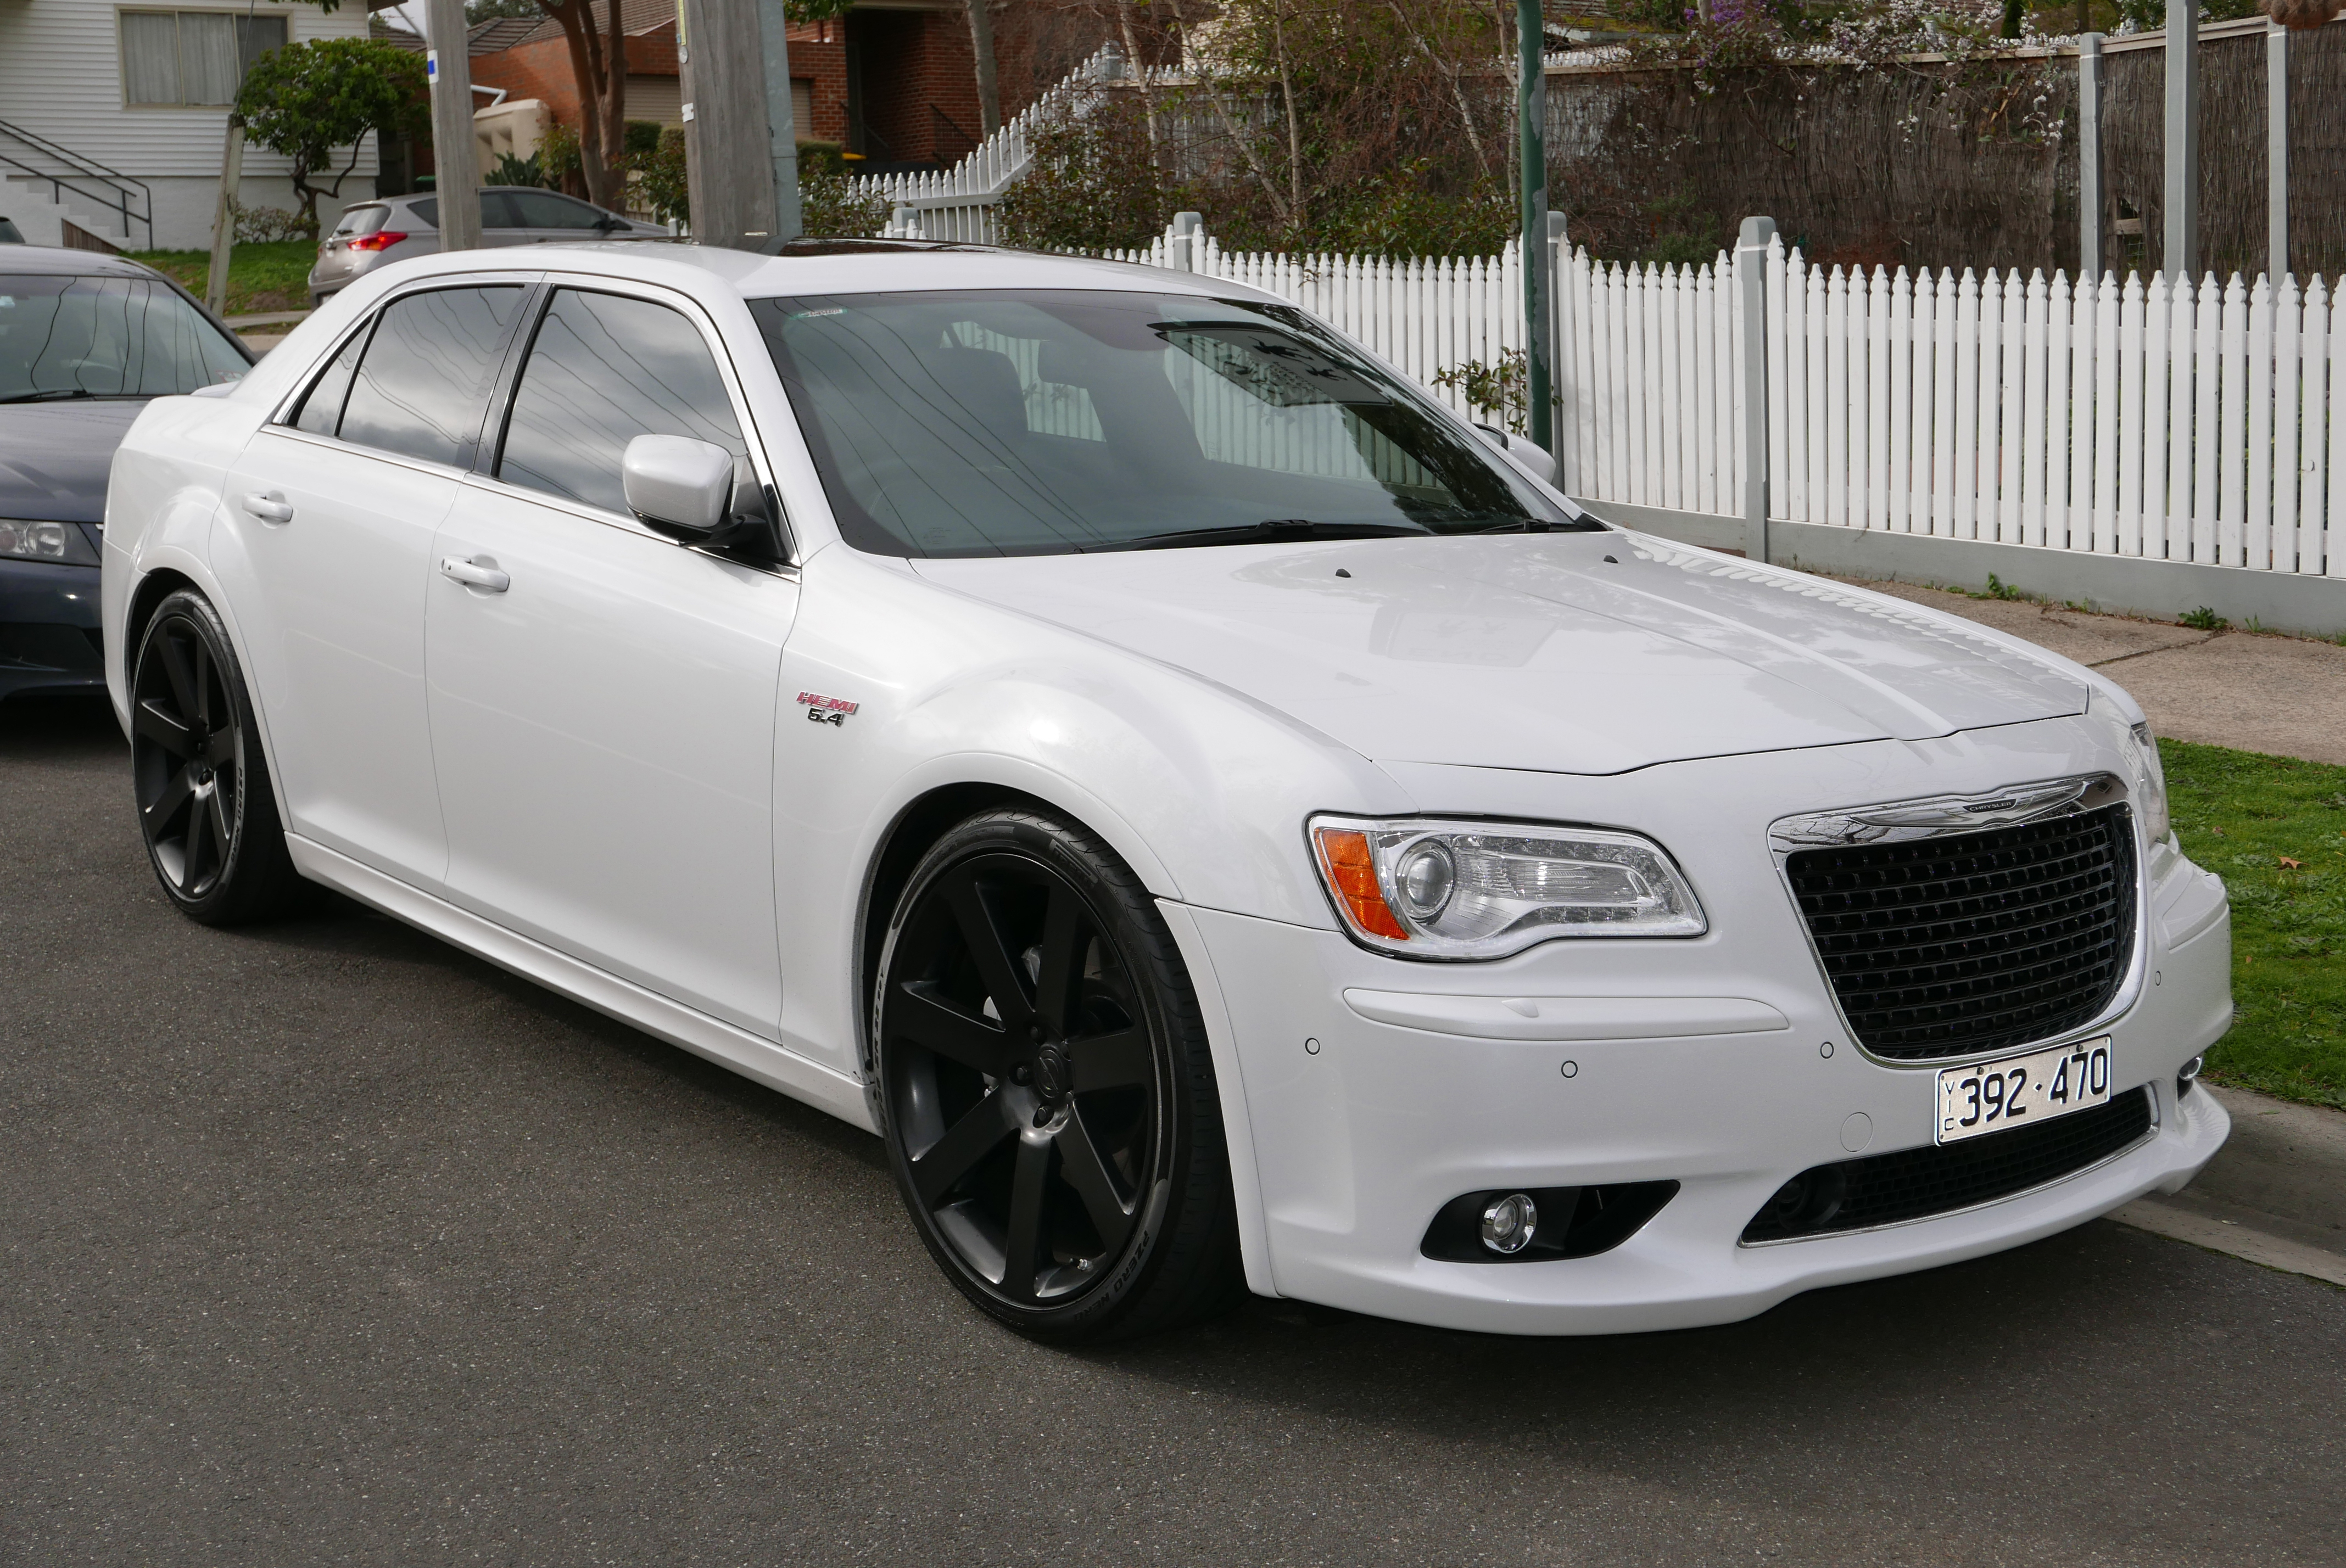 chrysler 300 wallpapers images photos pictures backgrounds. Black Bedroom Furniture Sets. Home Design Ideas